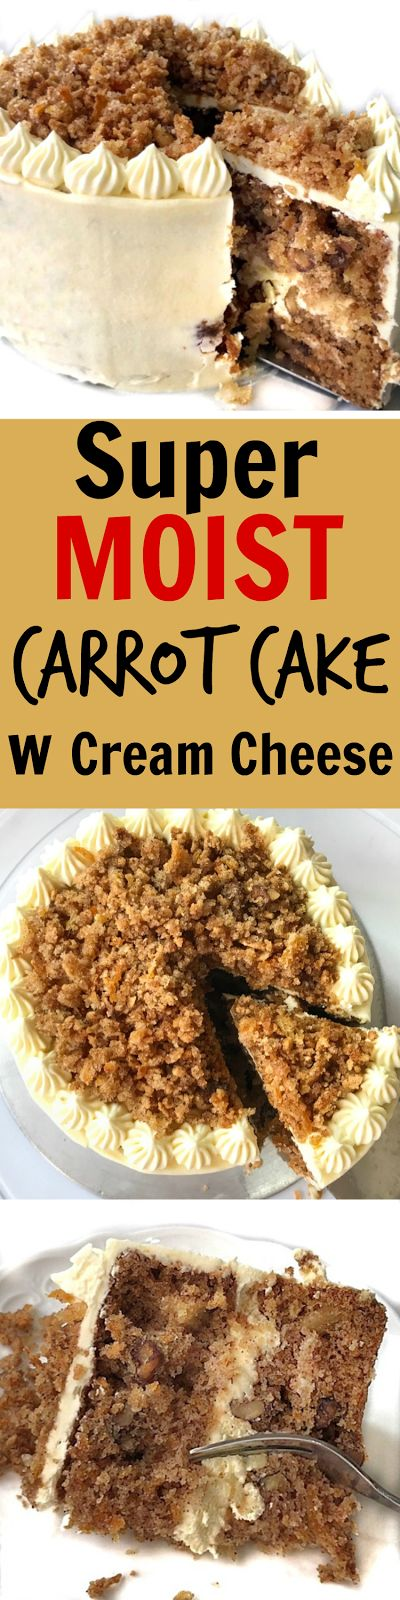 Super Moist Carrot cake with cream cheese frosting..